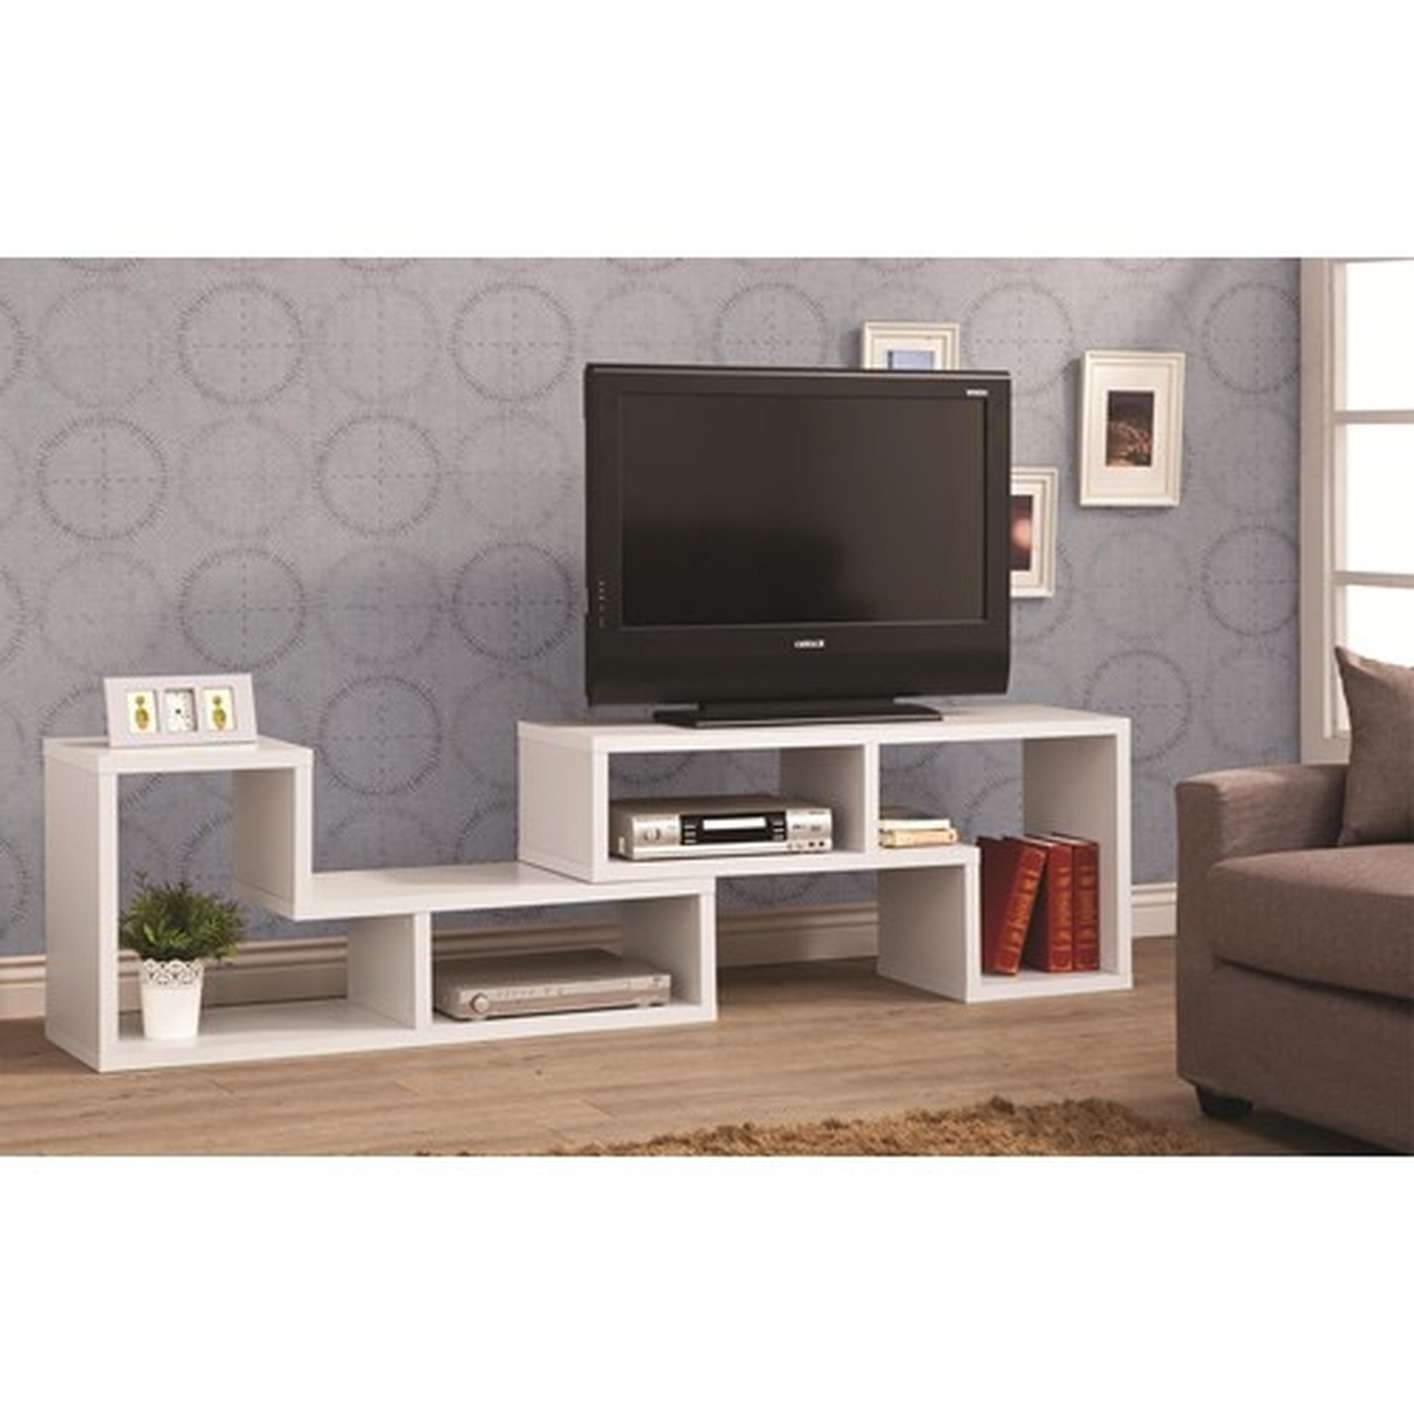 White Wood Tv Stand – Steal A Sofa Furniture Outlet Los Angeles Ca Inside White Wooden Tv Stands (View 4 of 20)